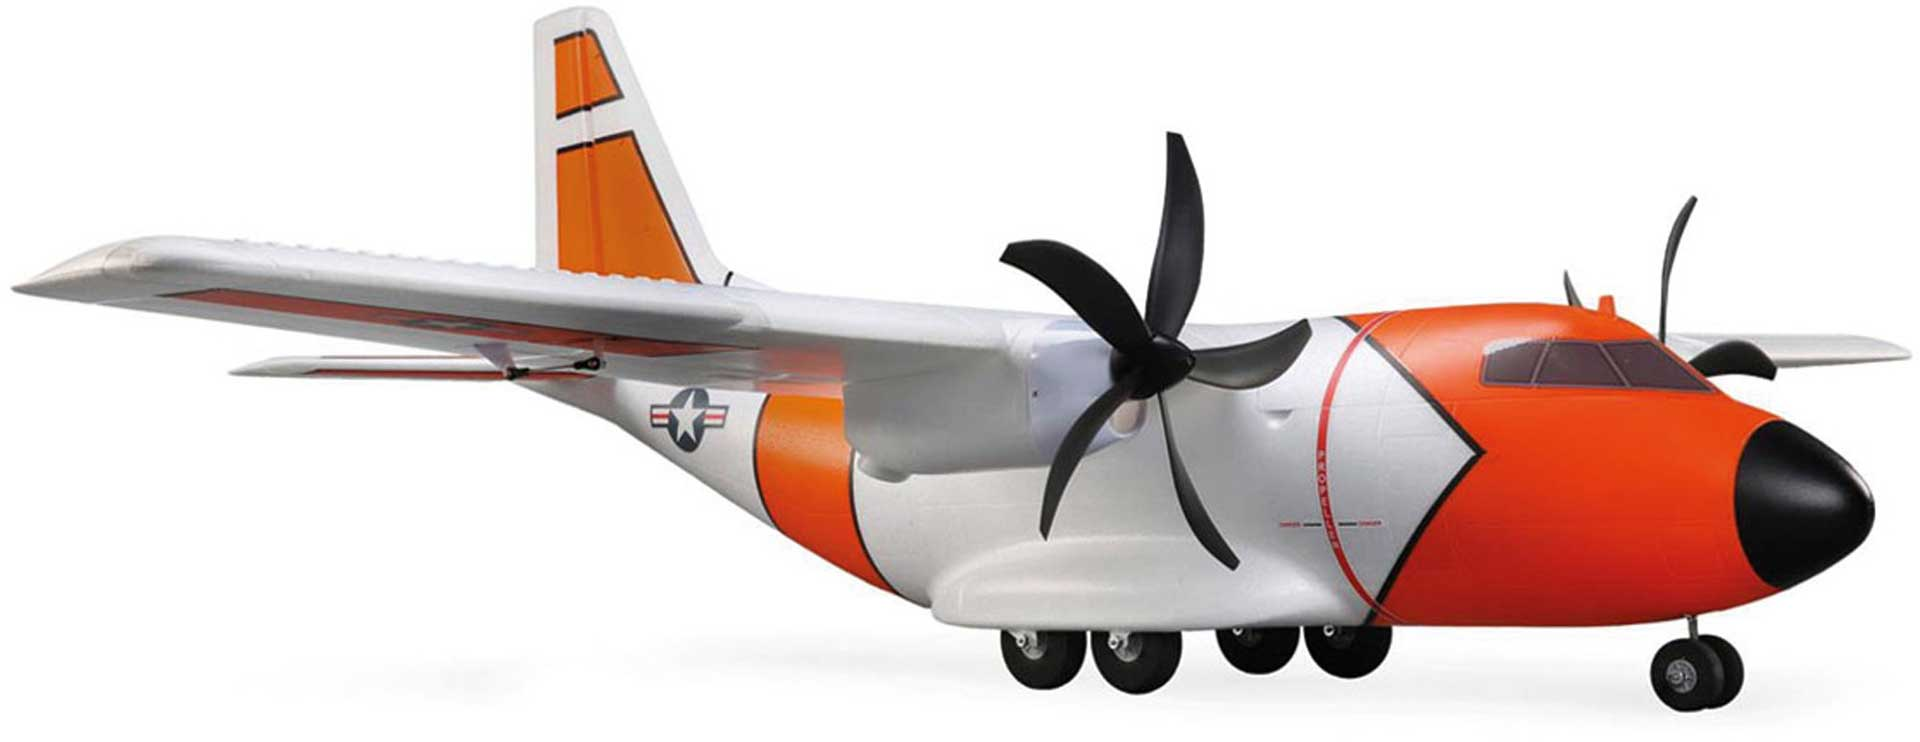 E-Flite CARGO EC-1500 TWIN 1.5M BNF BASIC AS3X AND SAFE SELECT